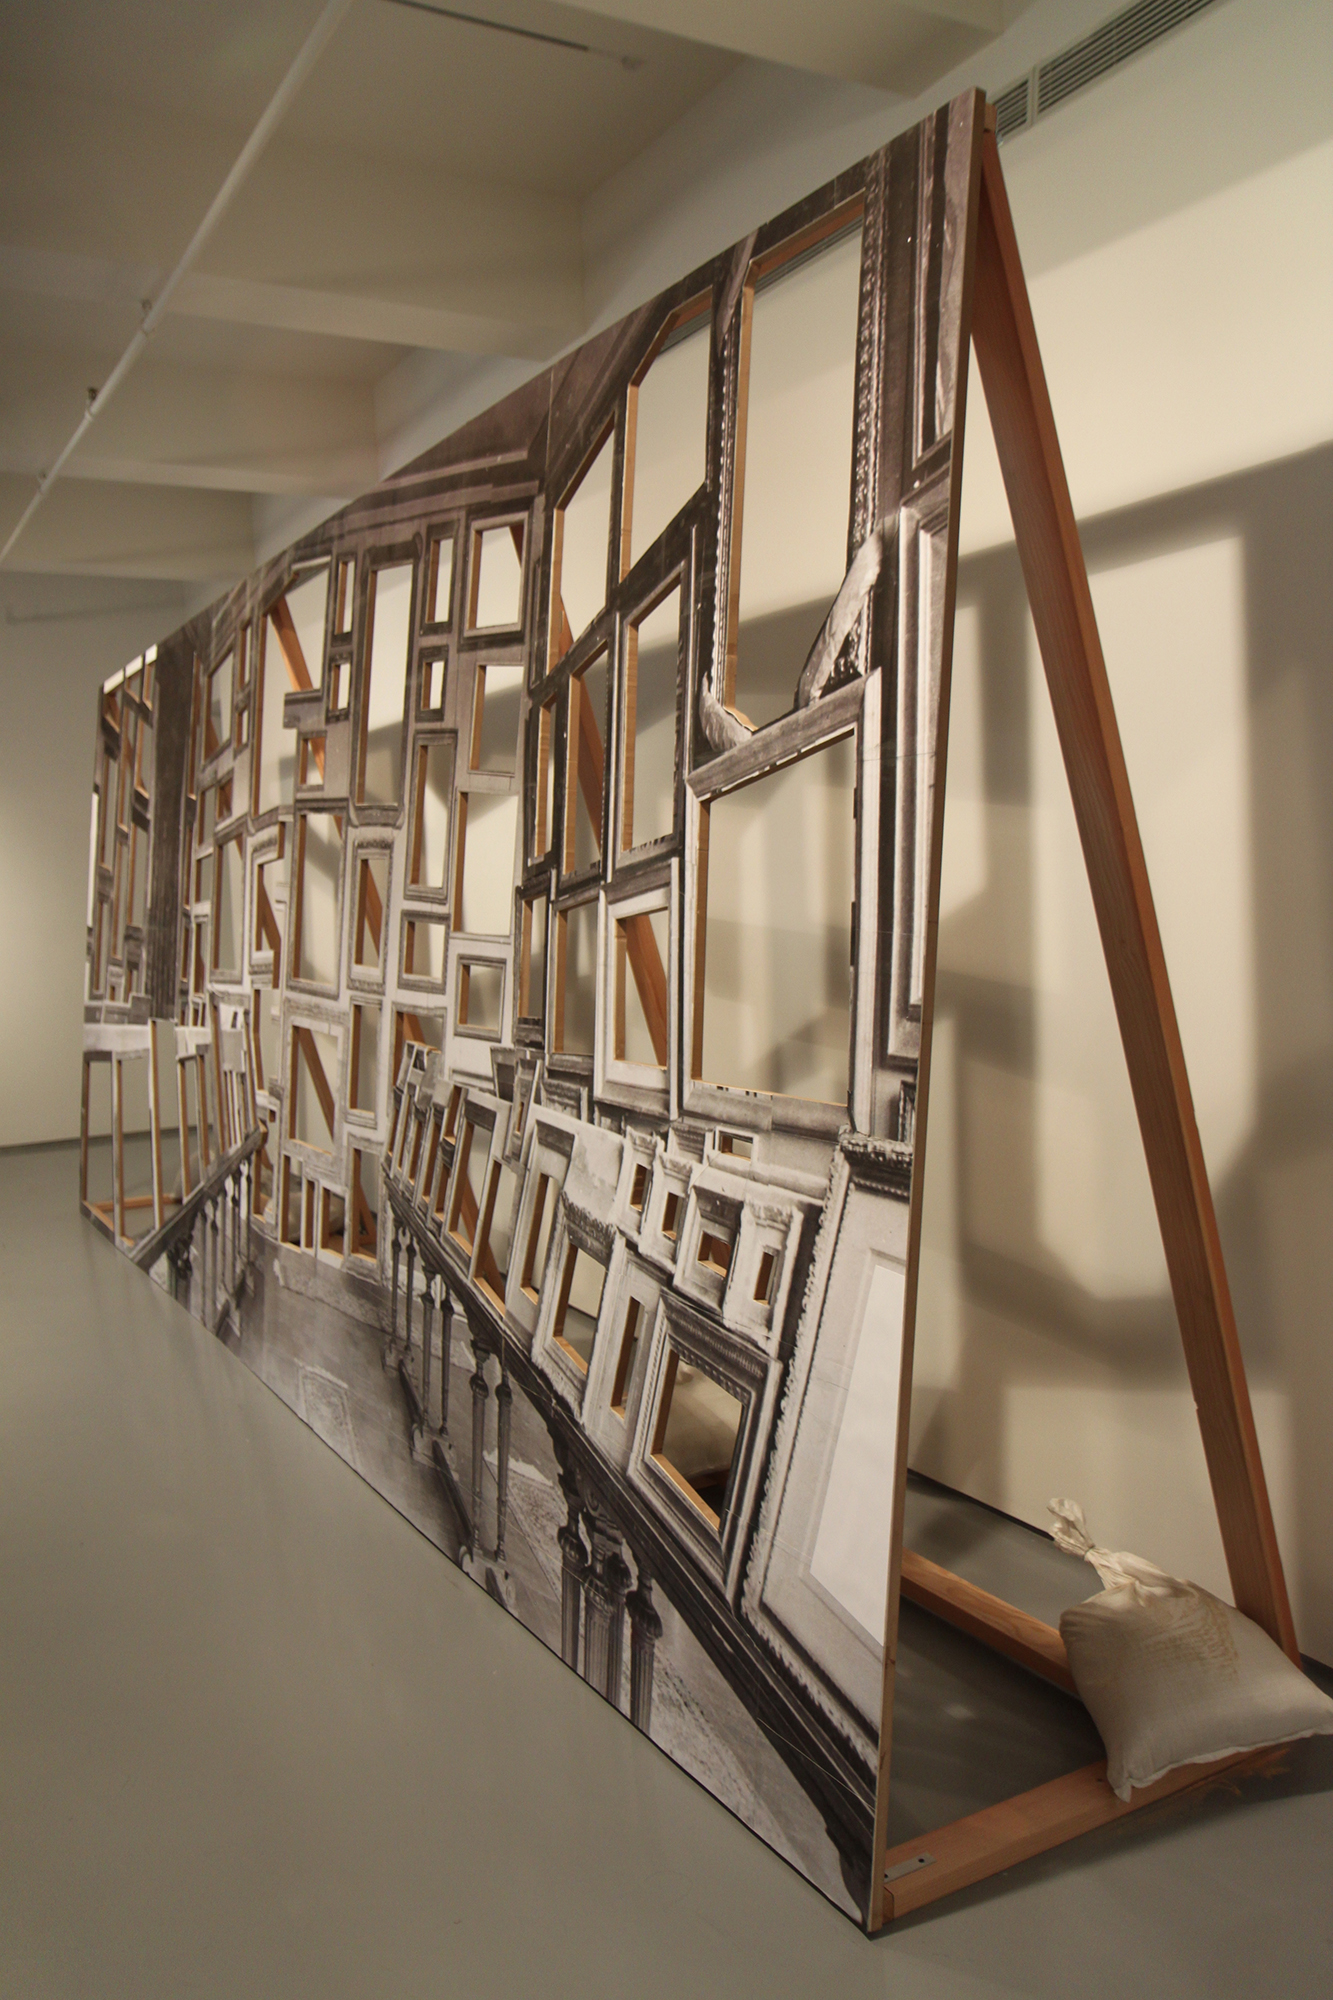 Room of Martyrs (Jeu de Paume) (detail), 2011-2012, photographs on wood with sand bags, 24 feet wide